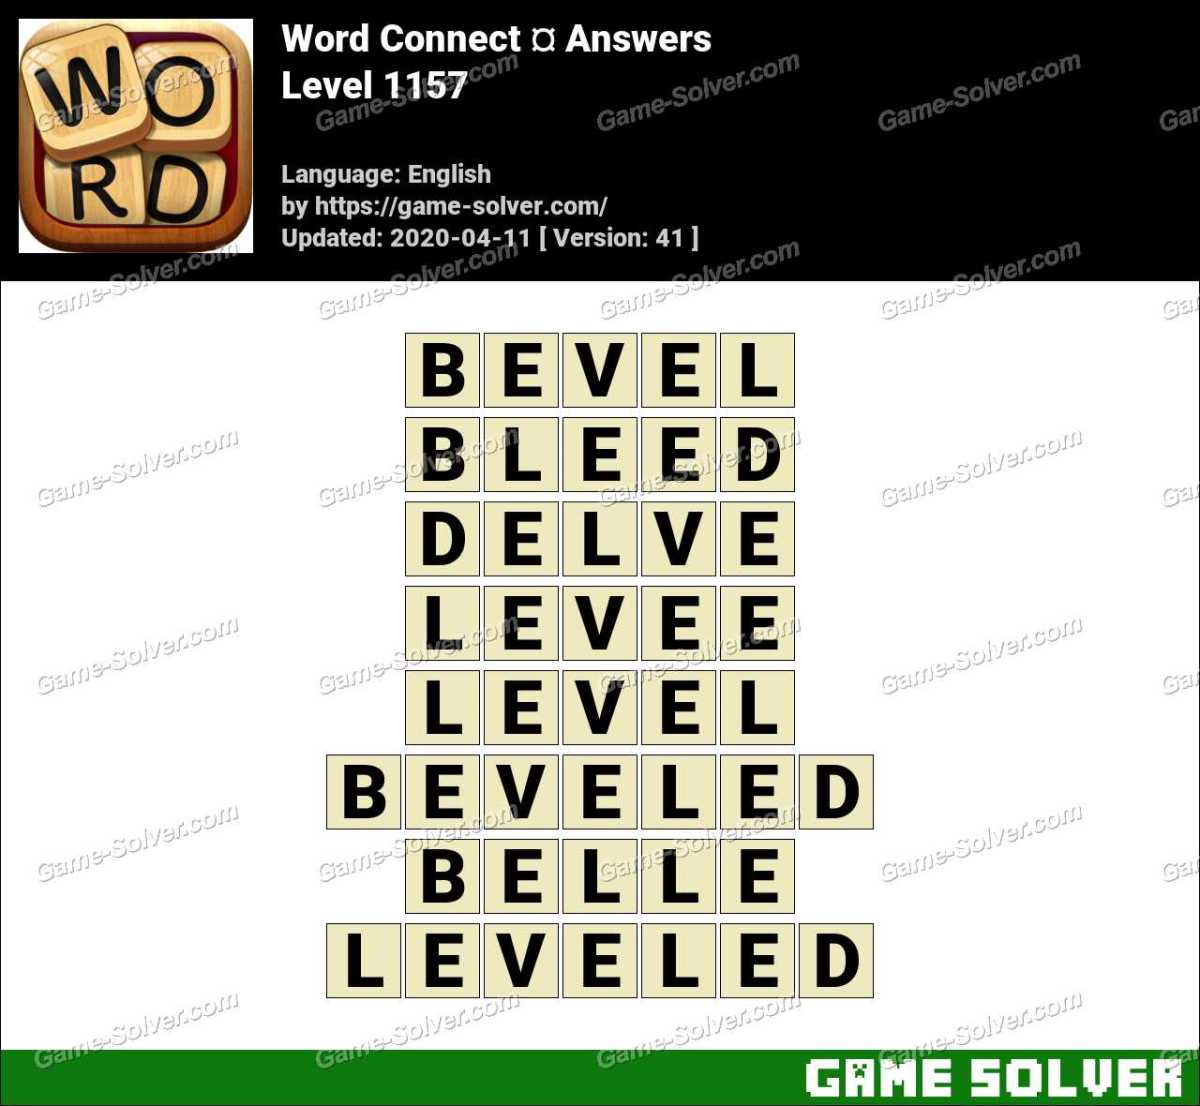 Word Connect Level 1157 Answers